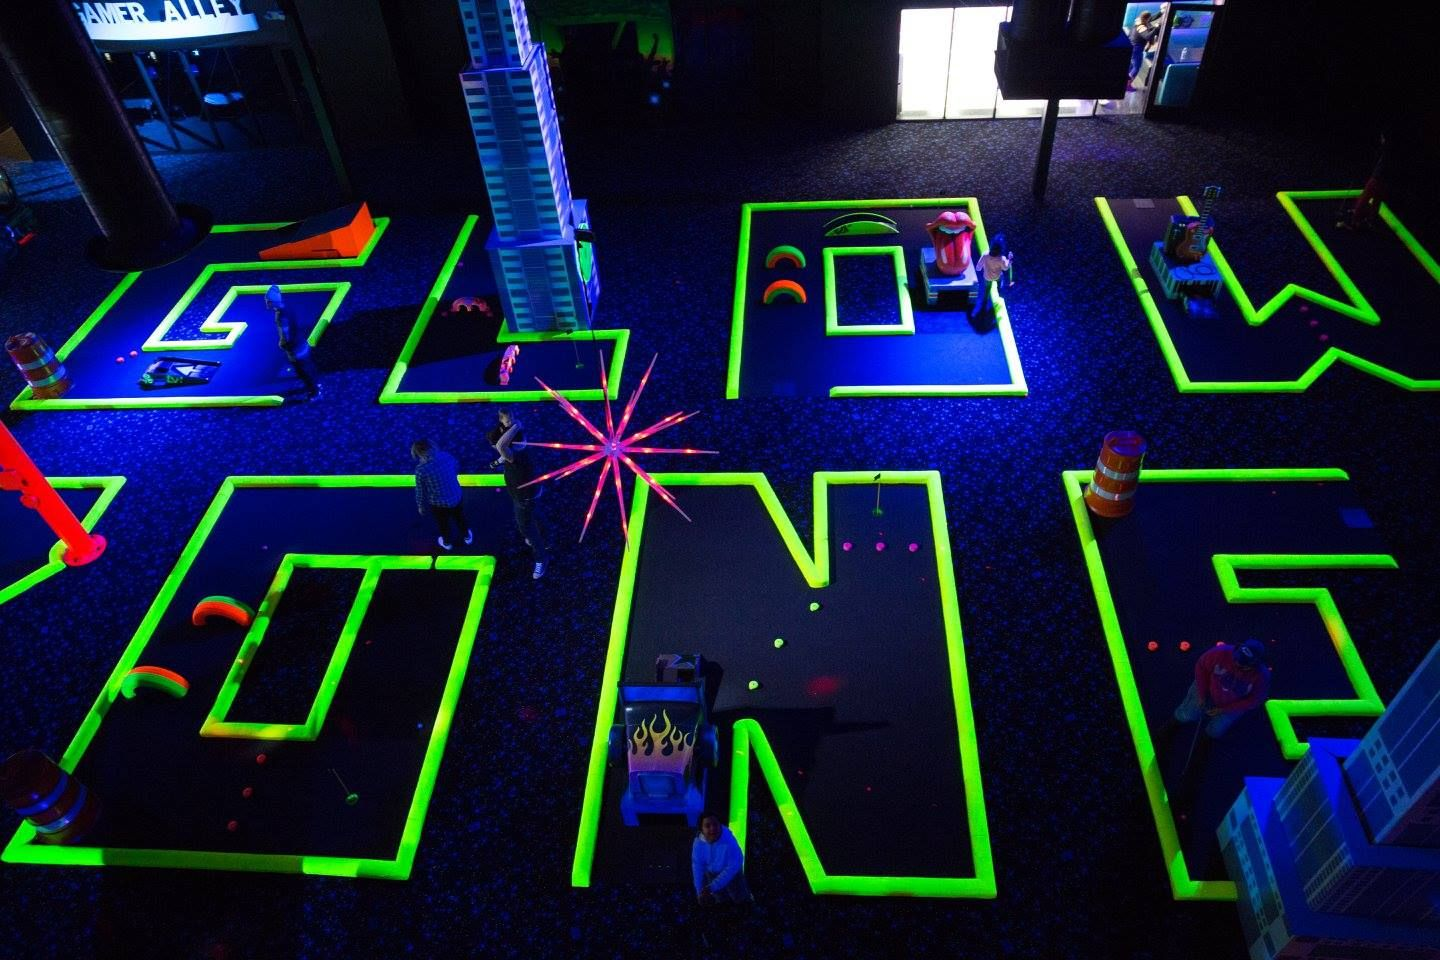 Take Your Little Ninja Warriors To Glowzone For Thrills Kids Obstacle Course Glow In The Dark Kids Playground